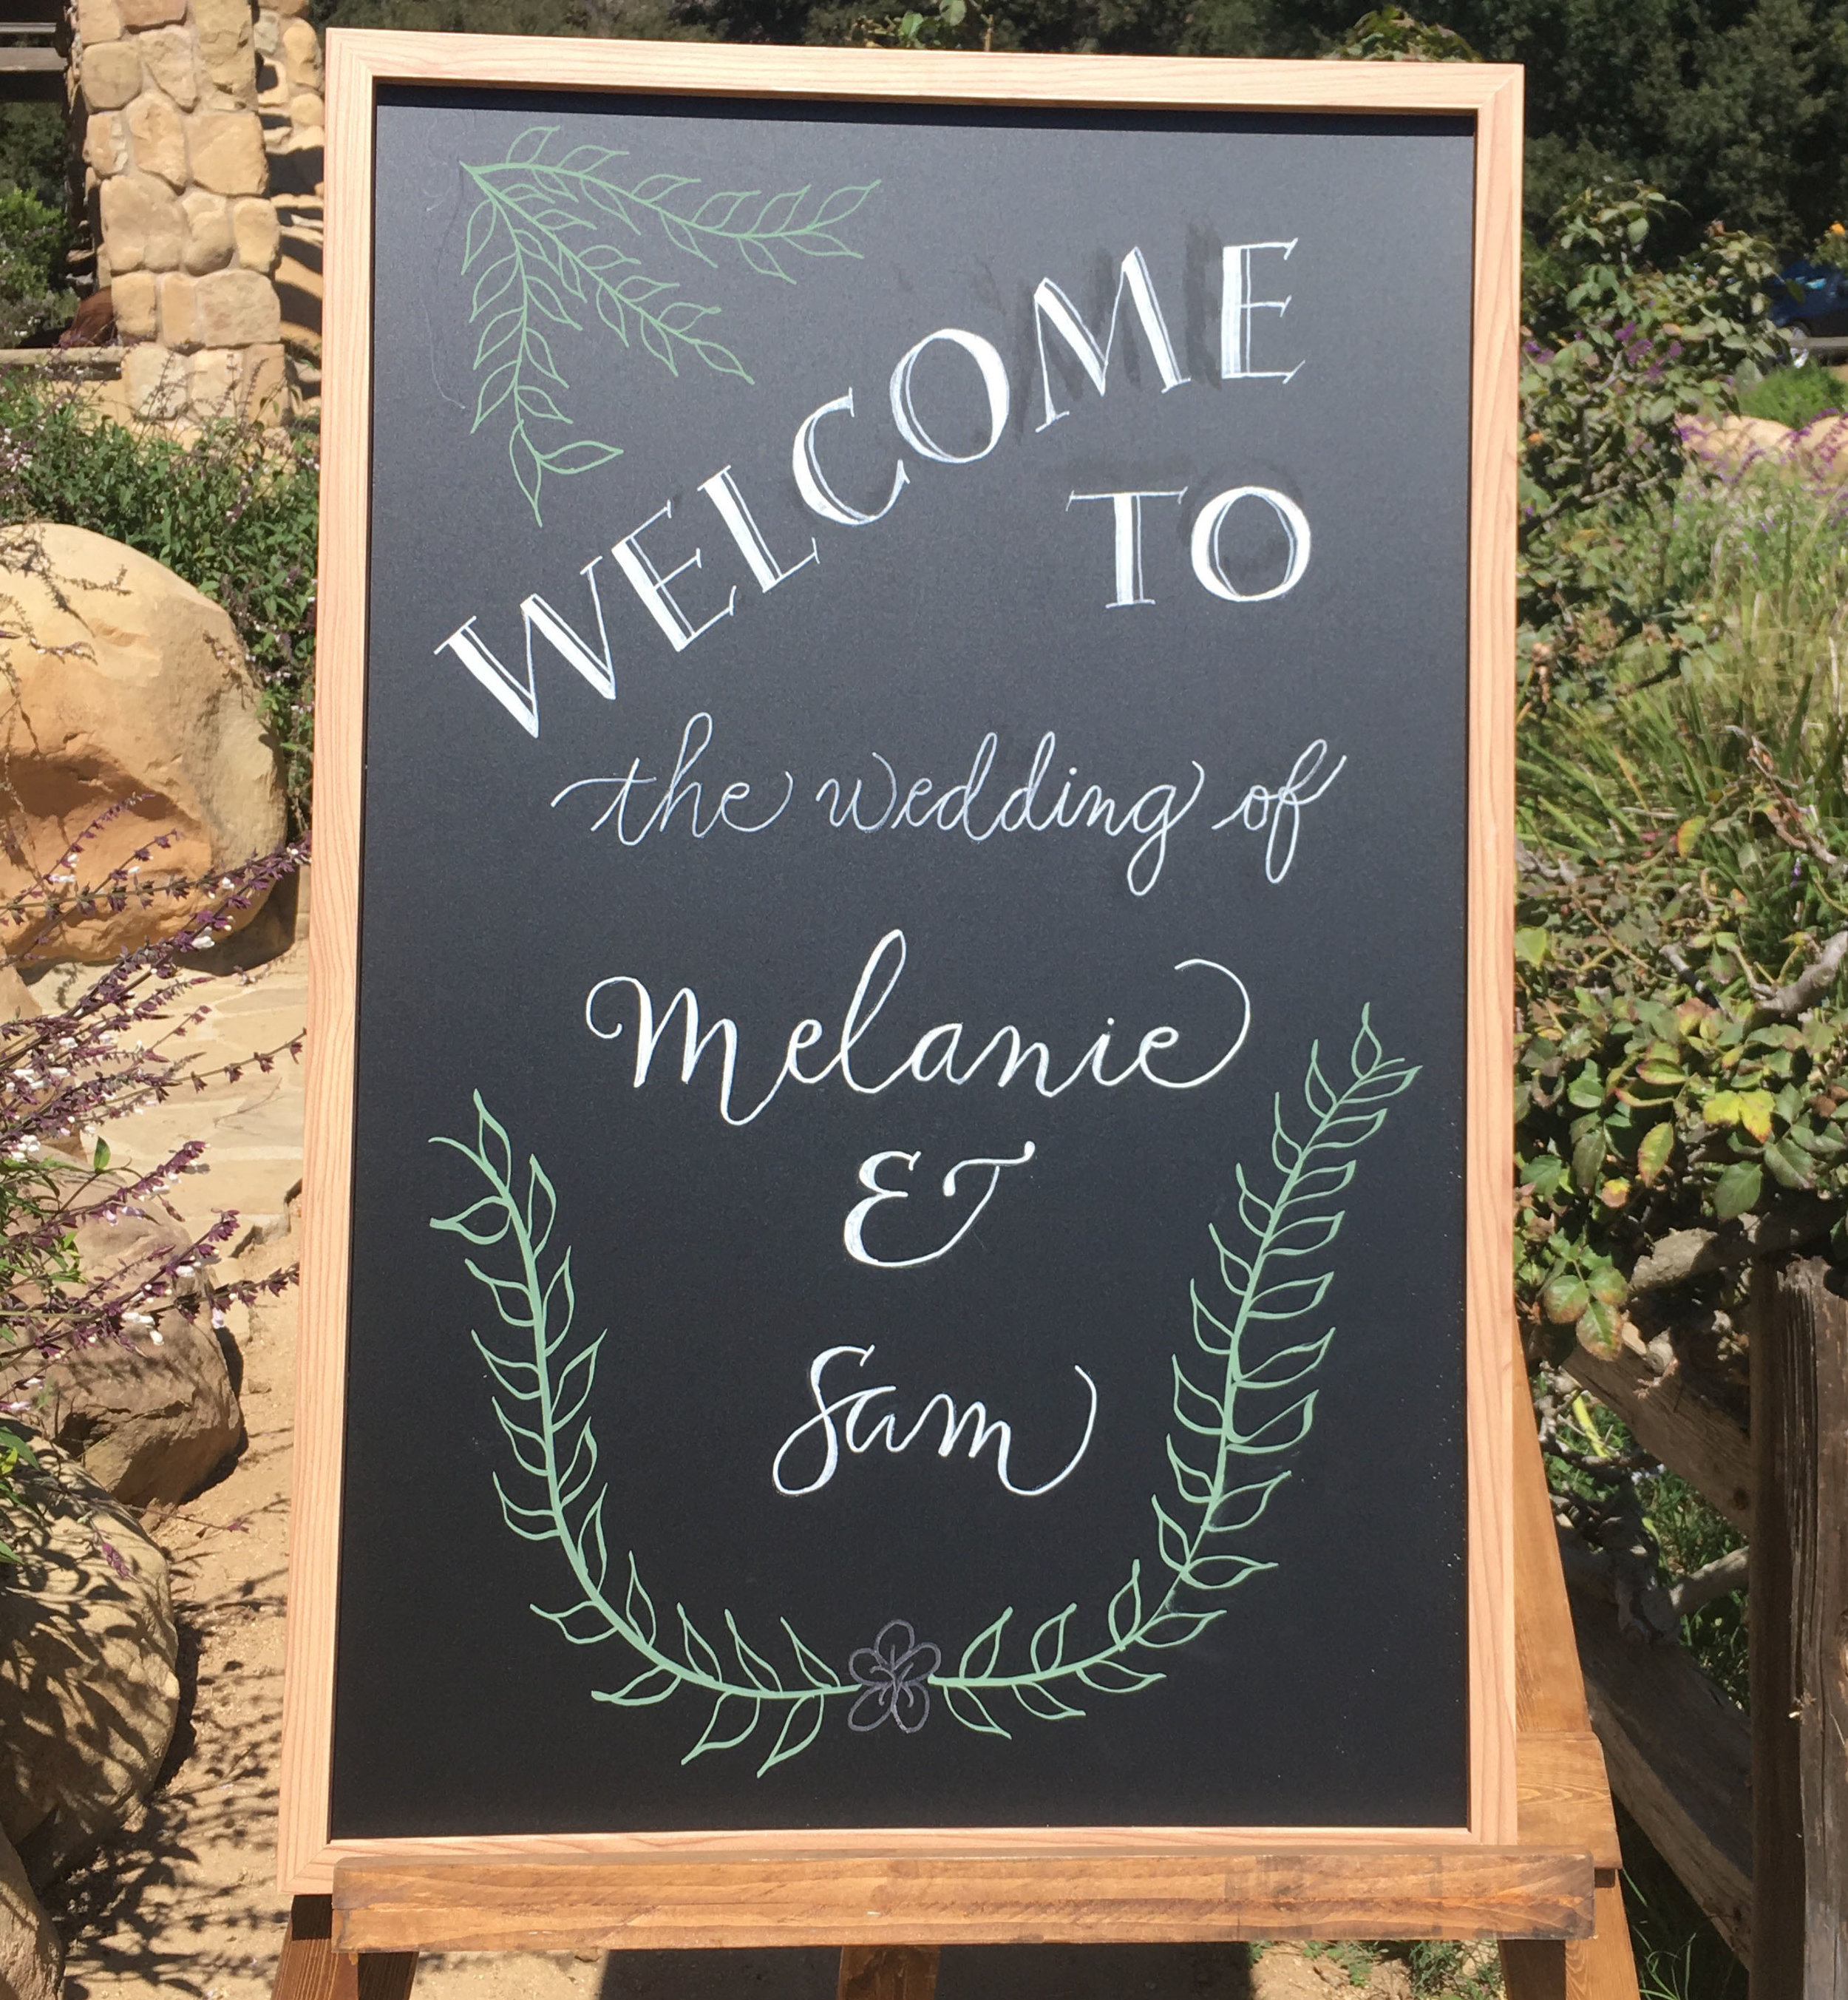 Sam & Mel's welcome sign.jpg